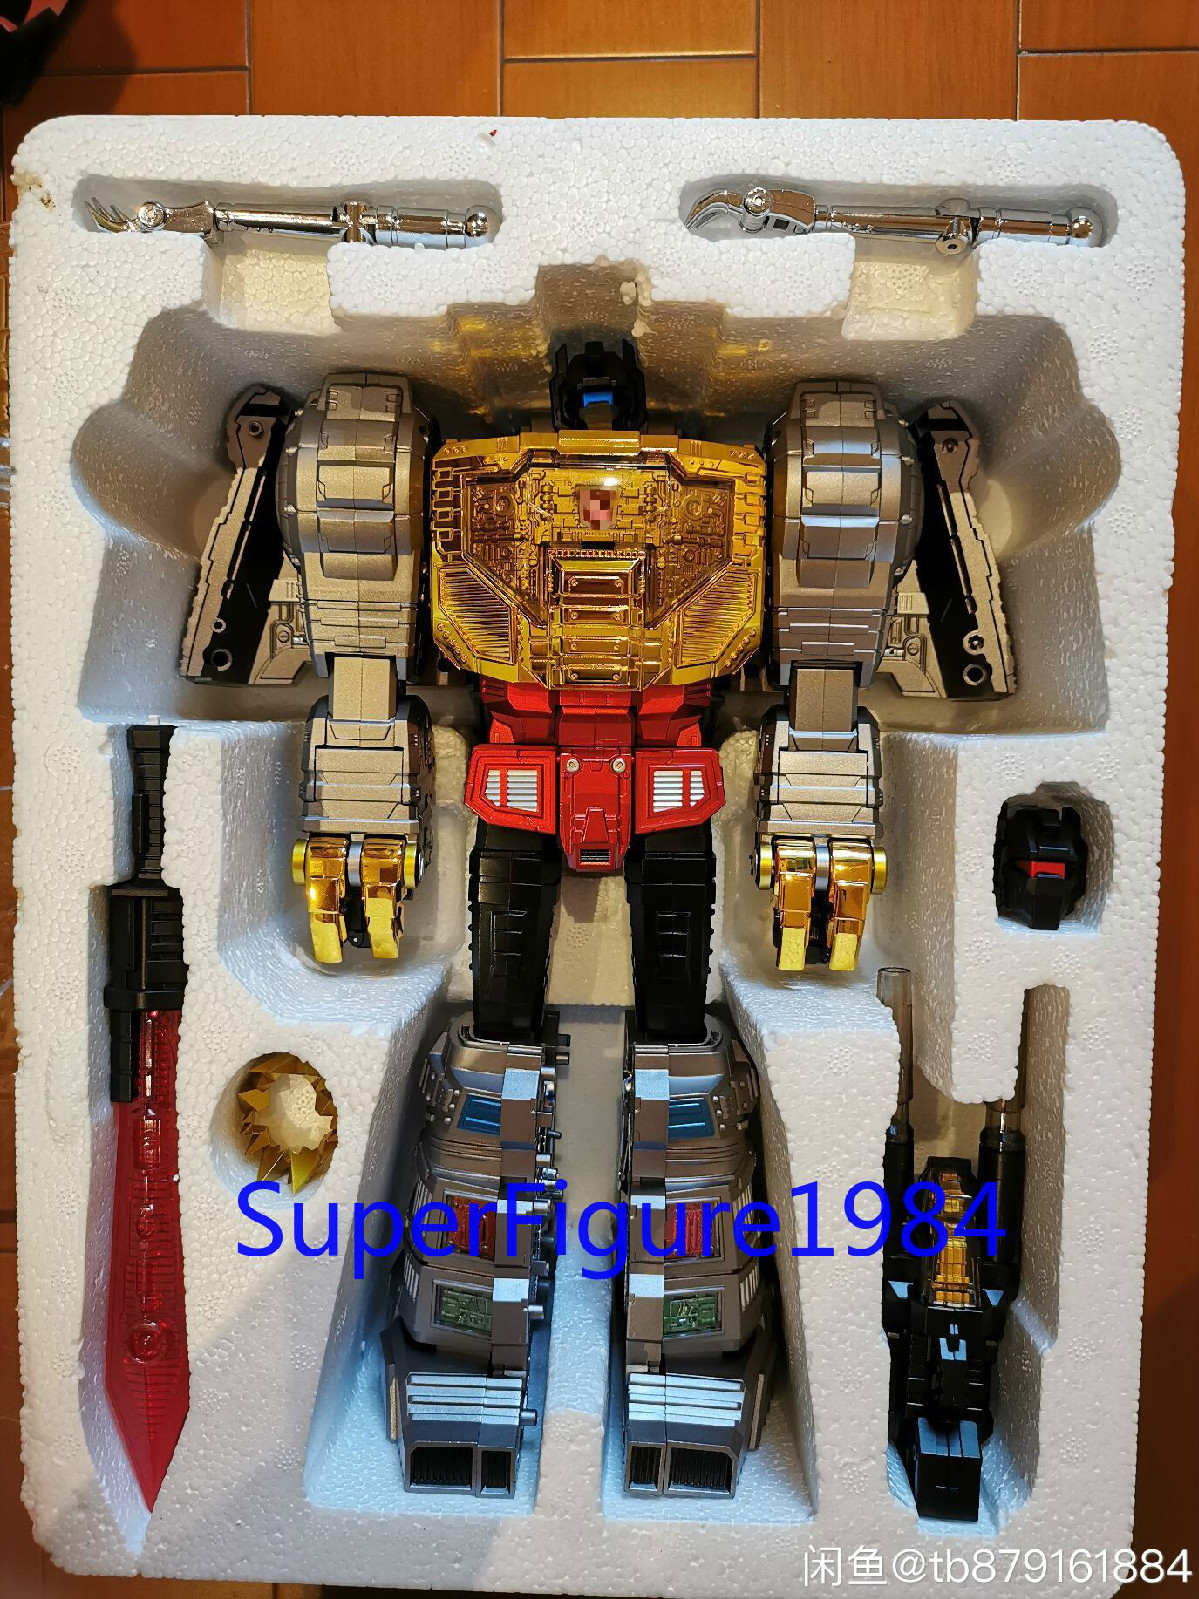 Transformers GigaPower HQ-01R Chrome Grimlock in Stock